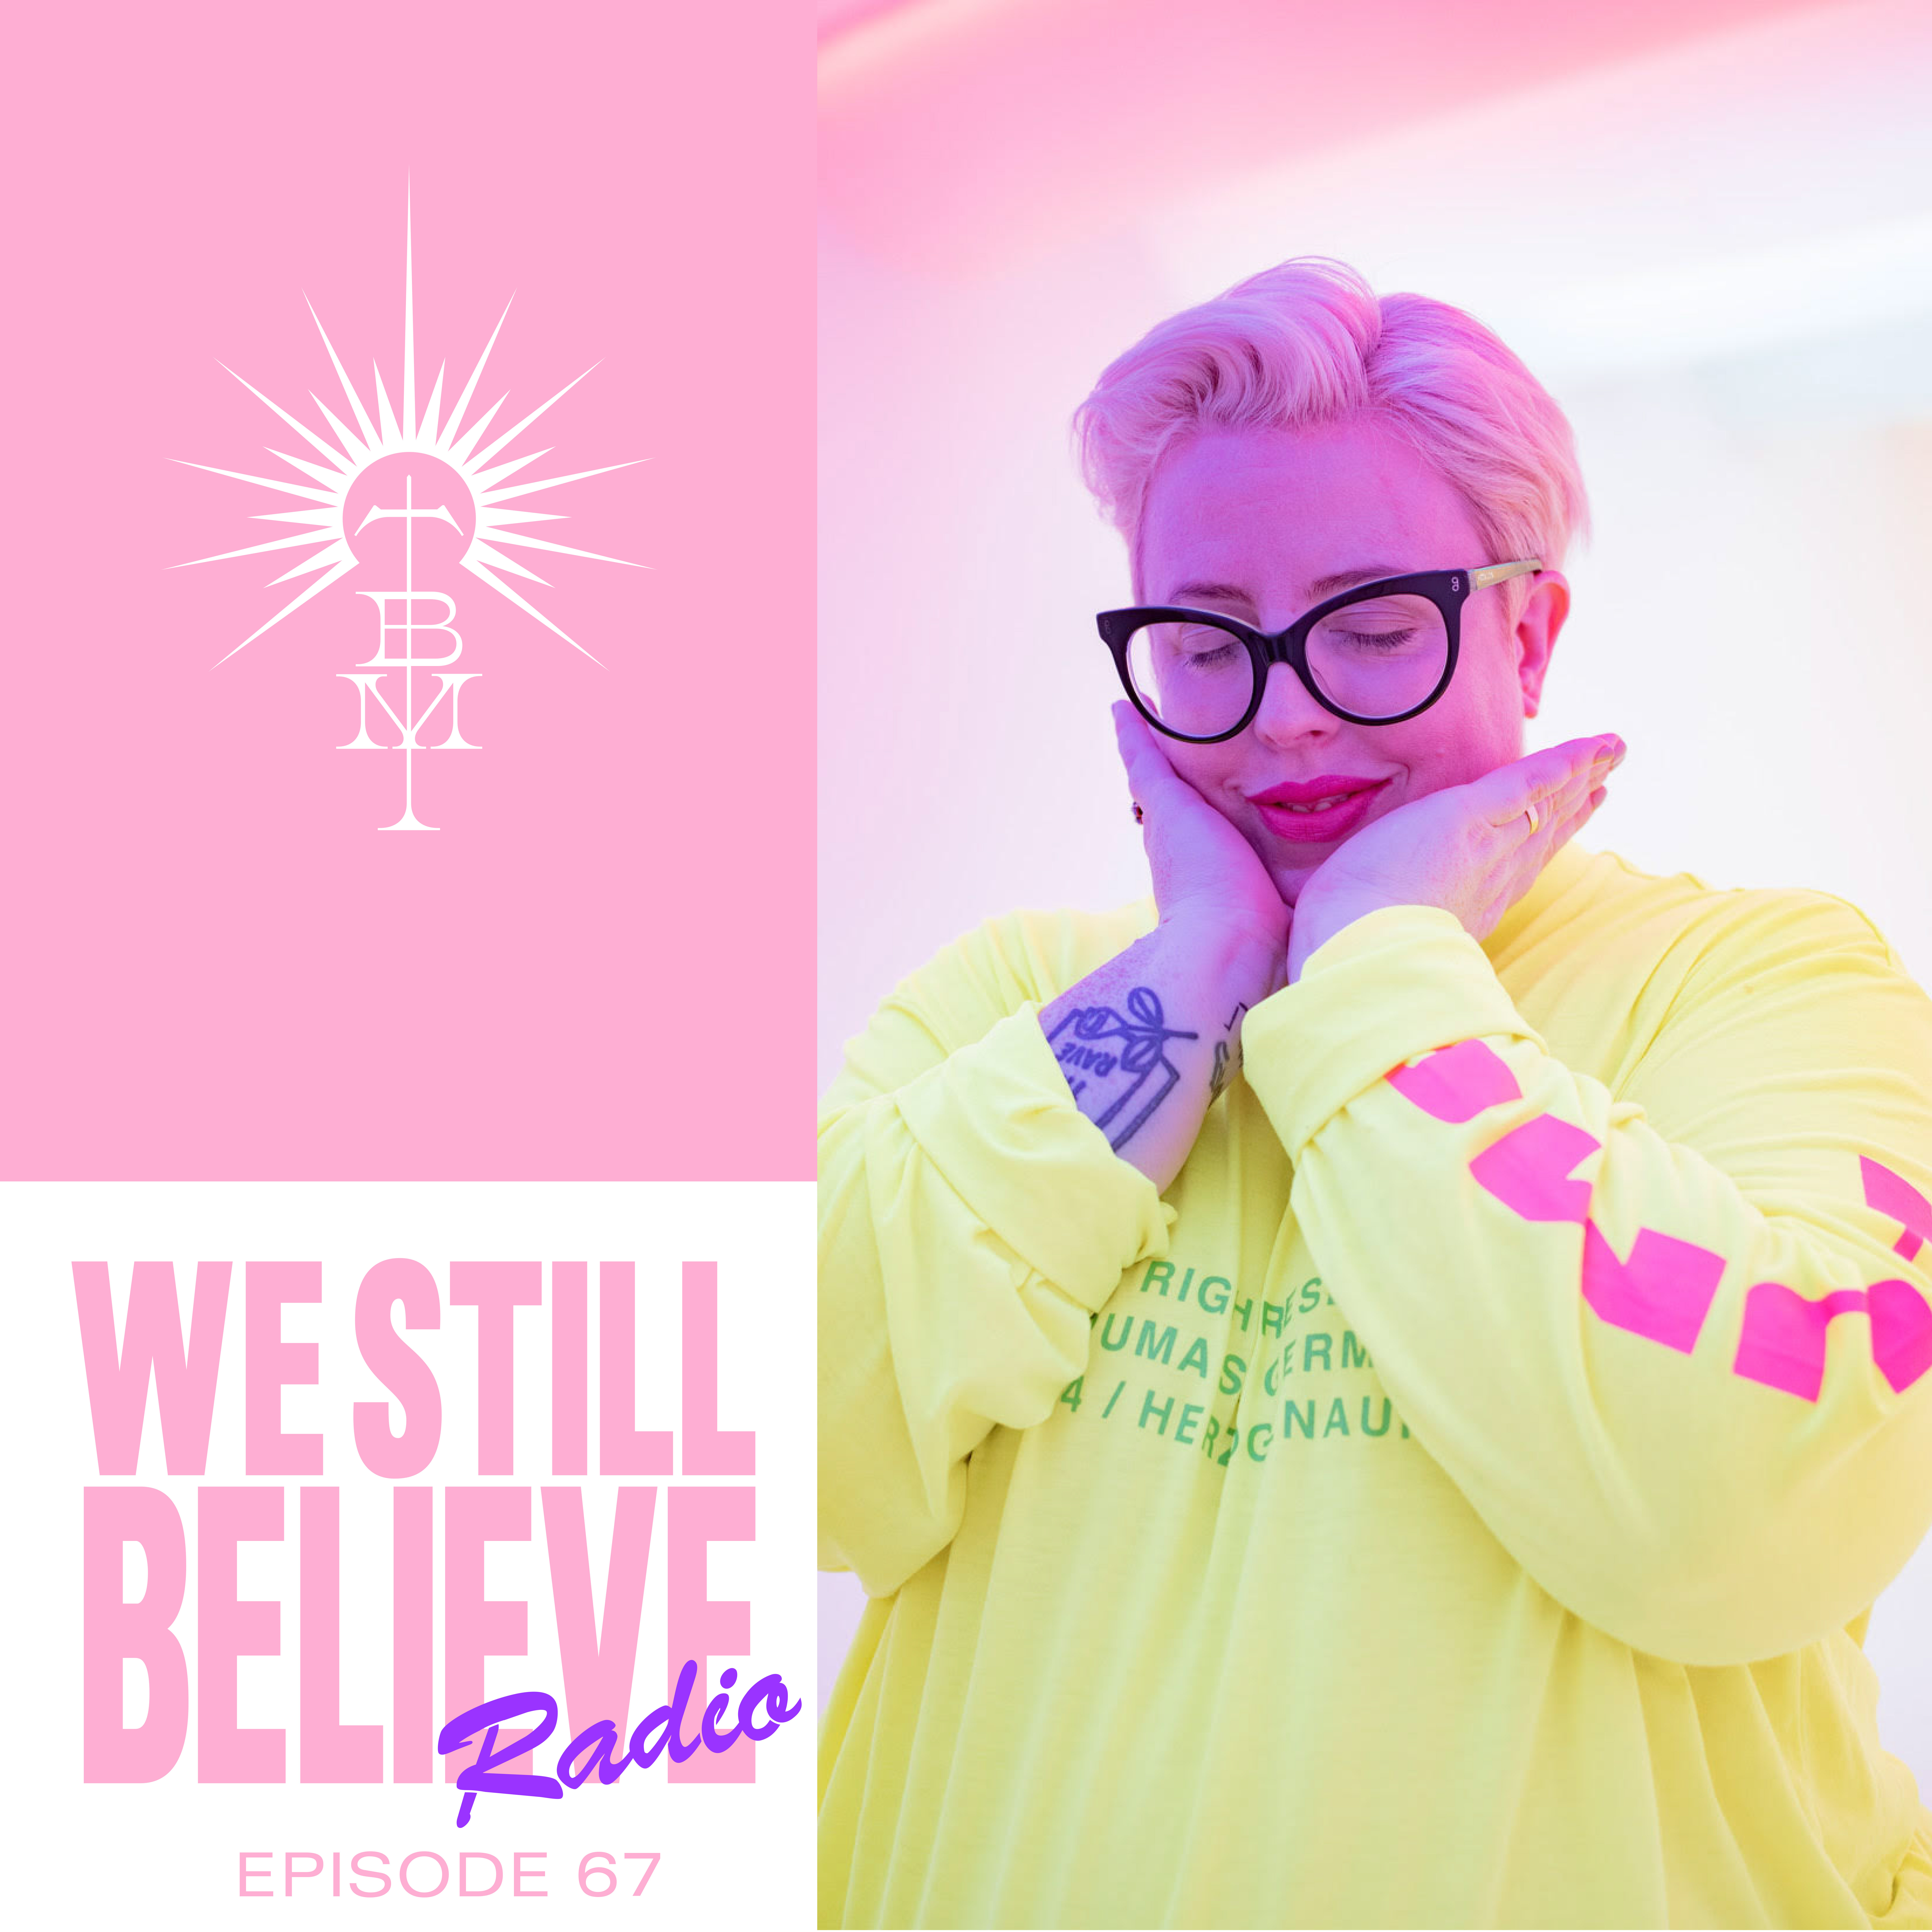 We Still Believe - Episode 067 - Disconet Special